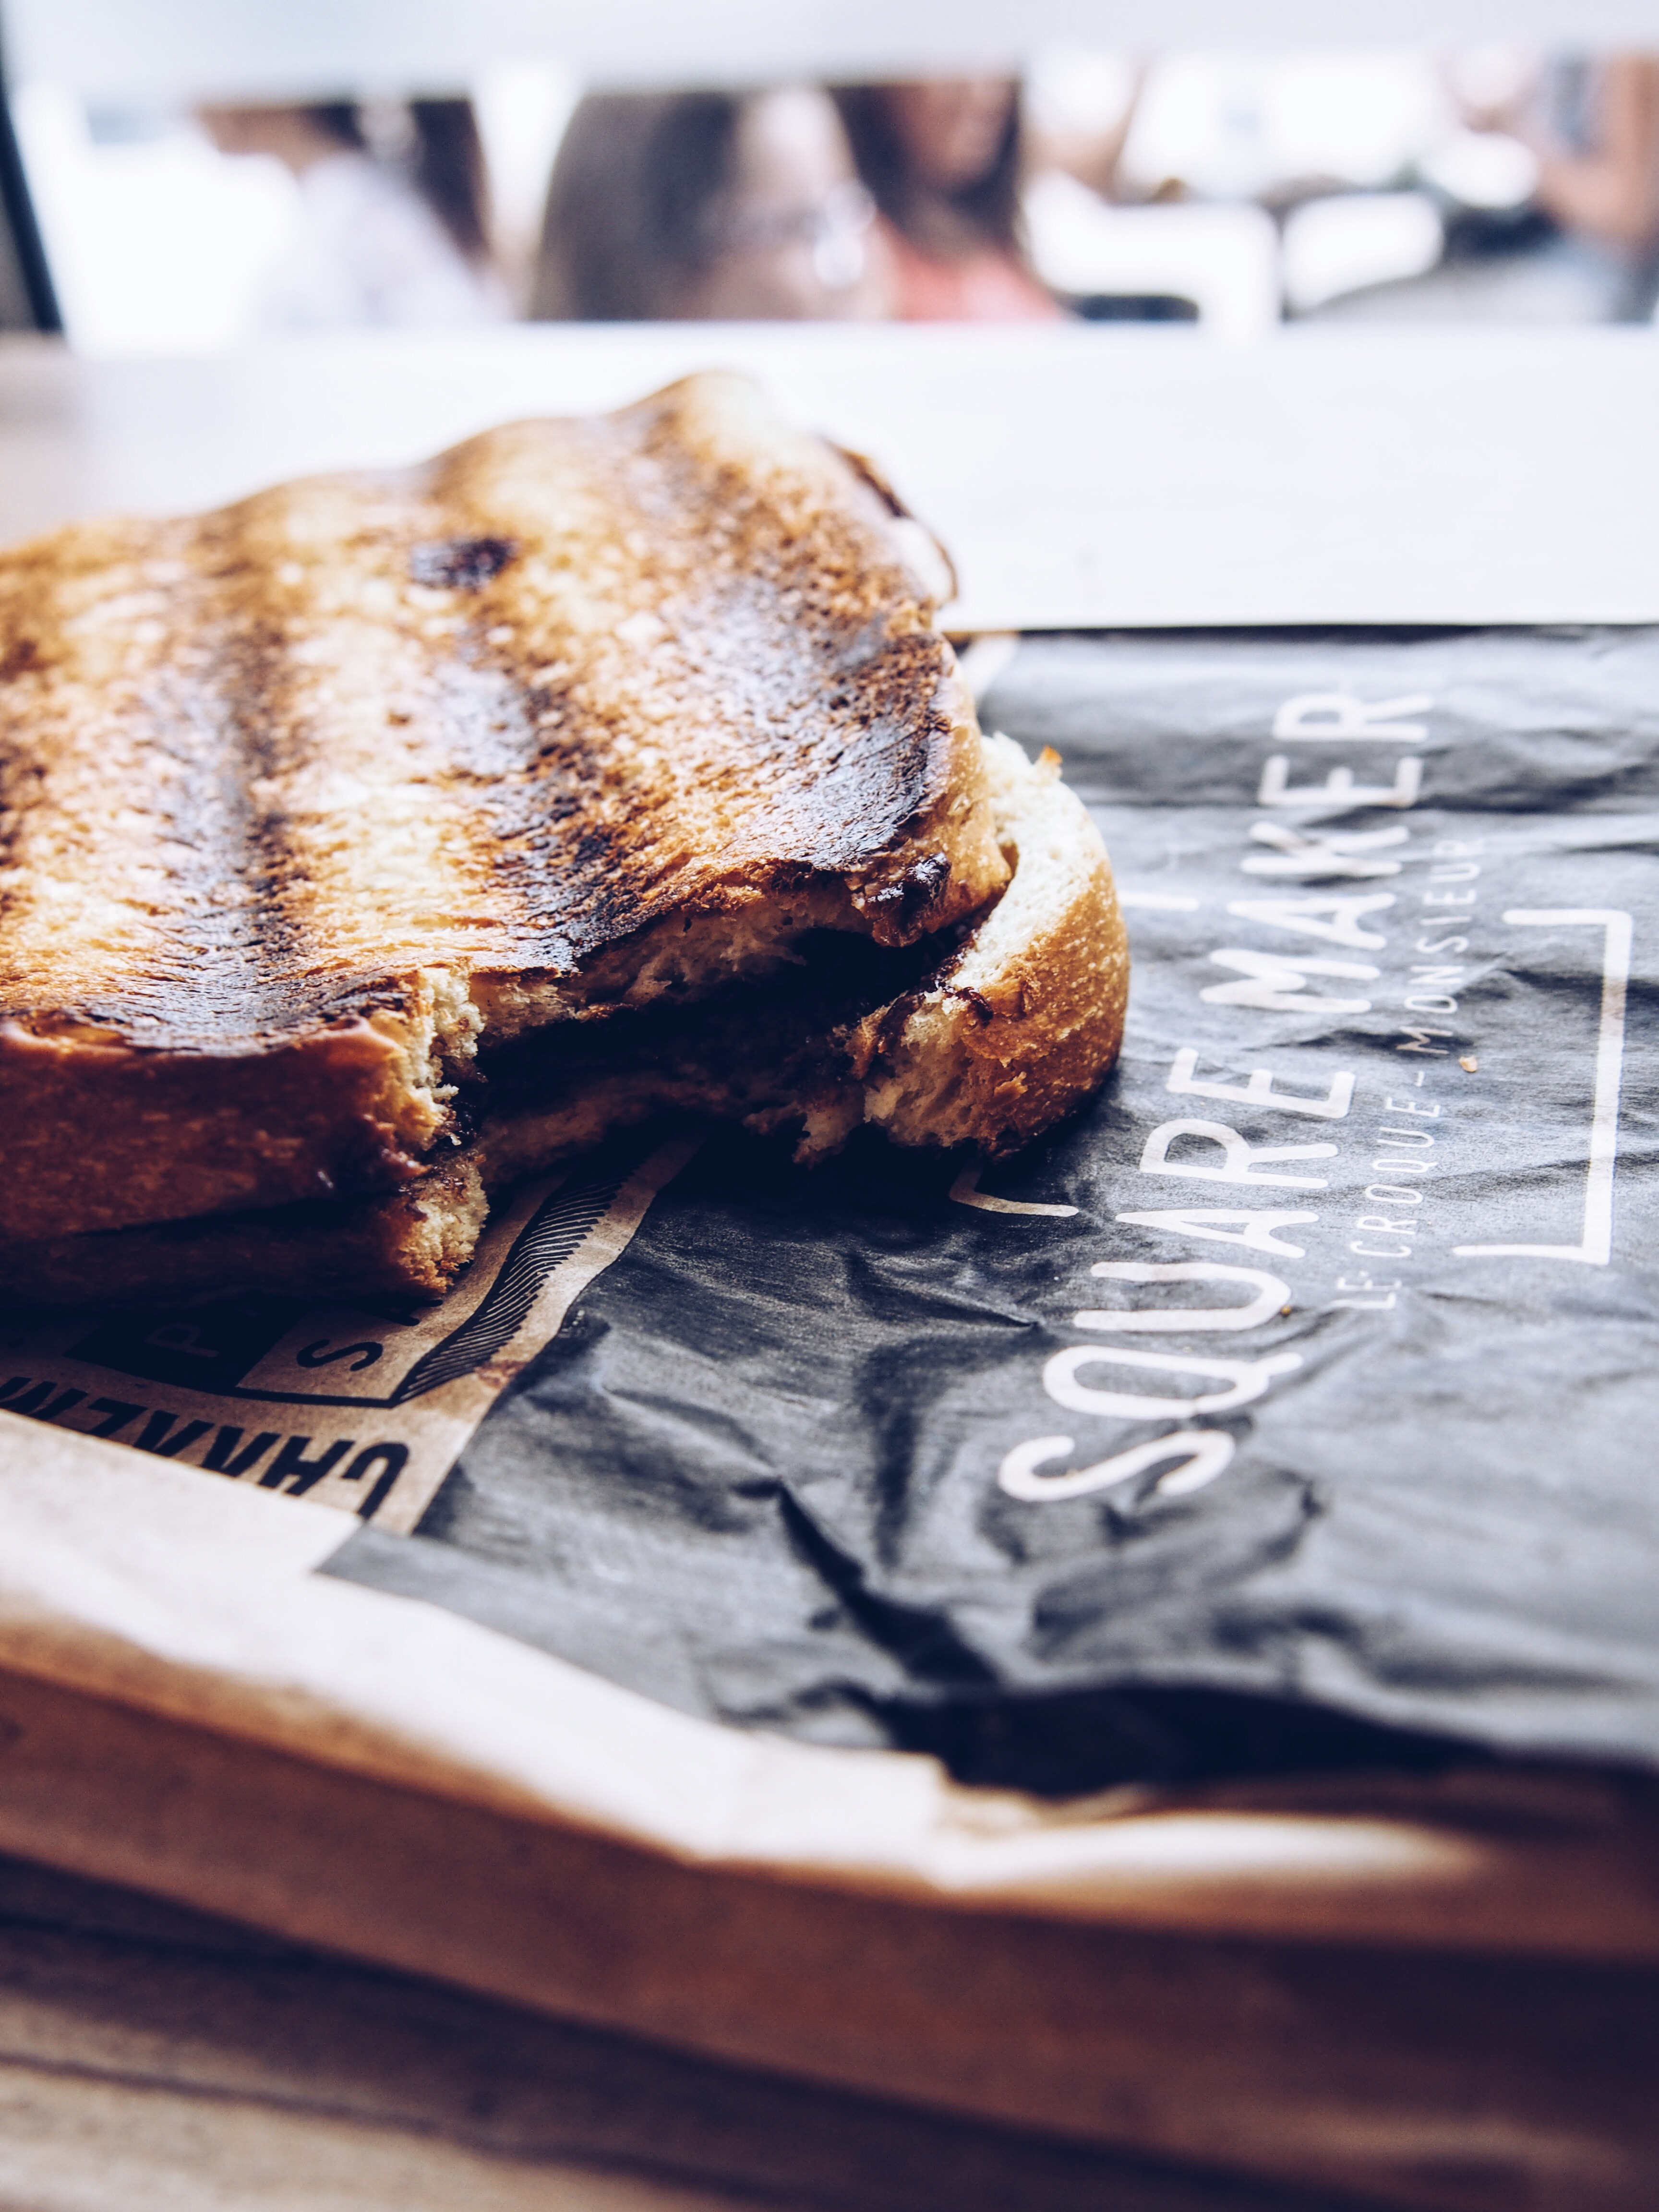 square-maker-avenue-83-toulon-la-valette-soprettylittlethings-croque-monsieur-restaurant